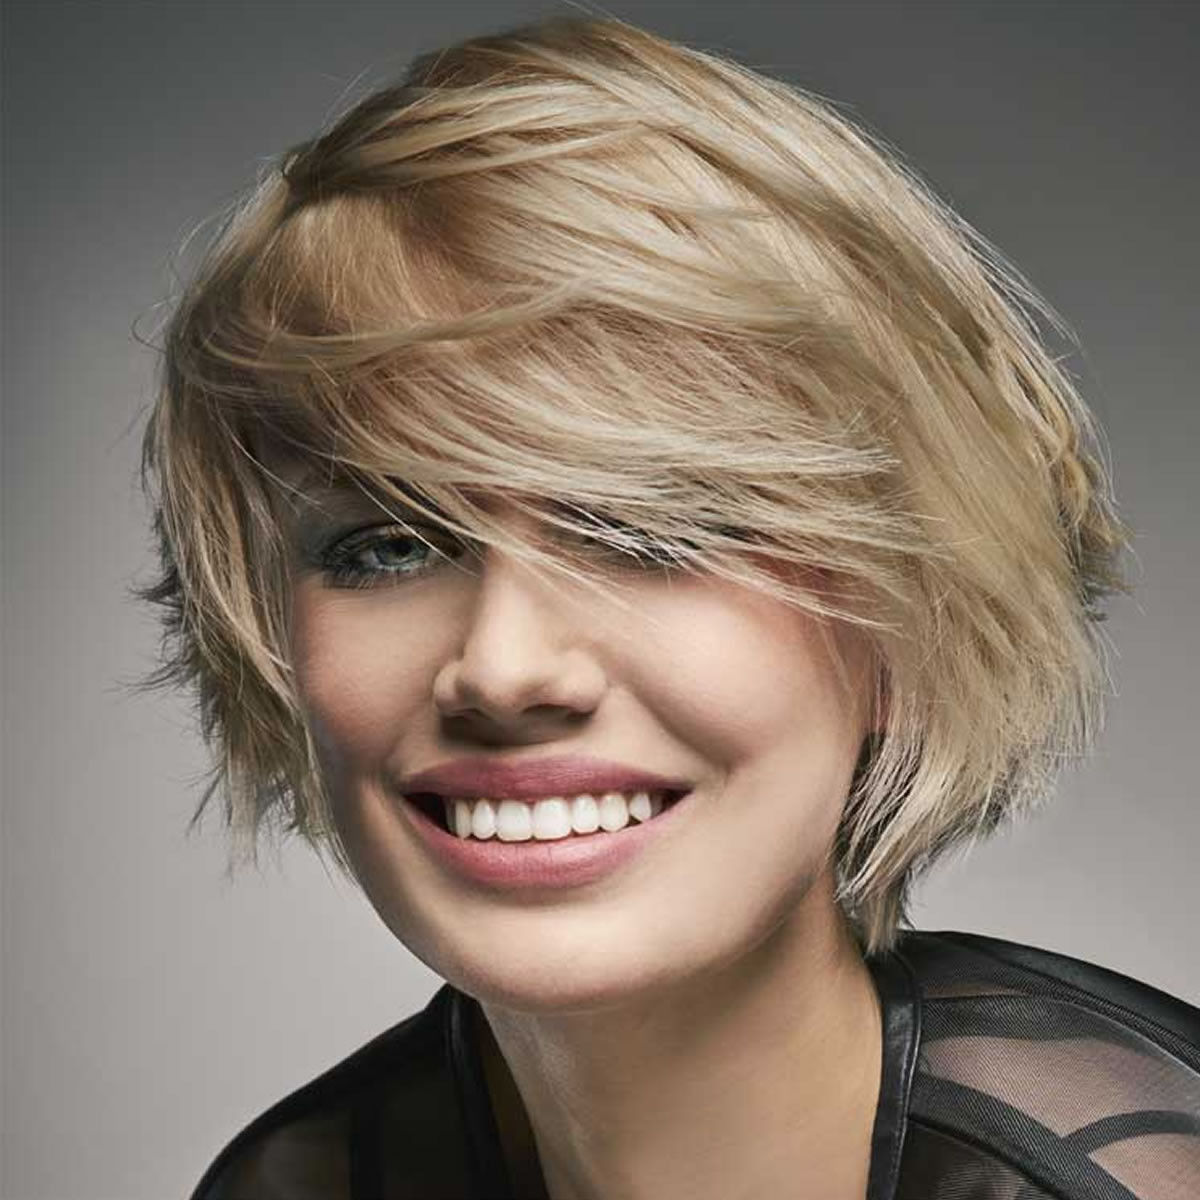 Best ideas about Pictures Of Bob Hairstyles . Save or Pin The Best 30 Short Bob Haircuts – 2018 Short Hairstyles for Now.